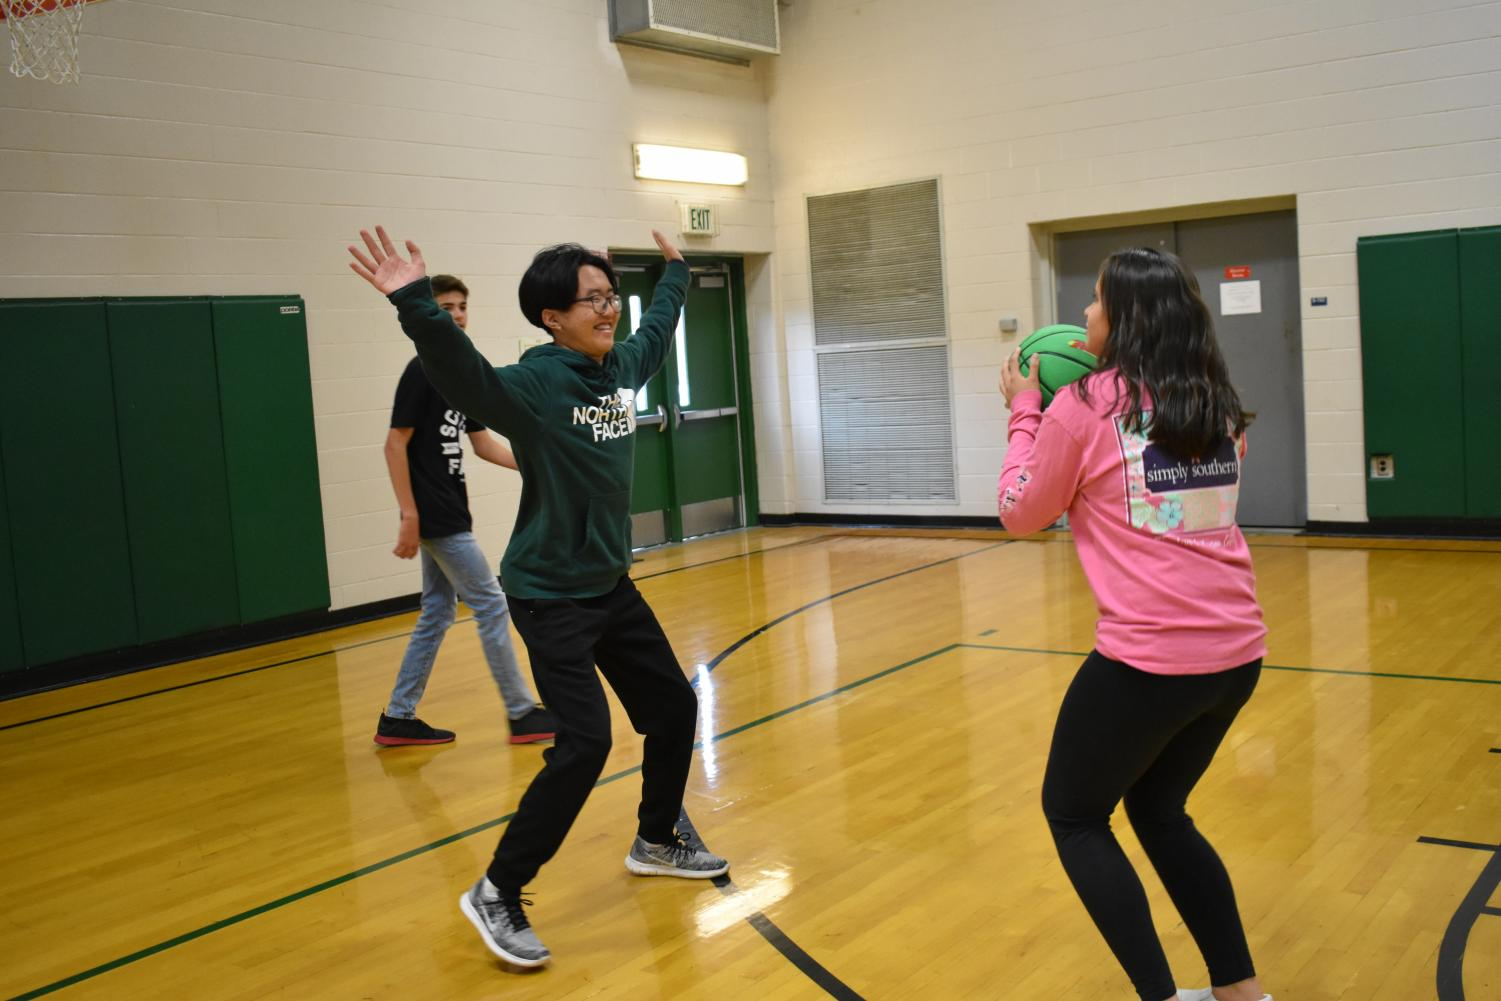 Freshman Matthew Batmukh and Nakomis Styers, are seen playing basketball in the Aux Gym.